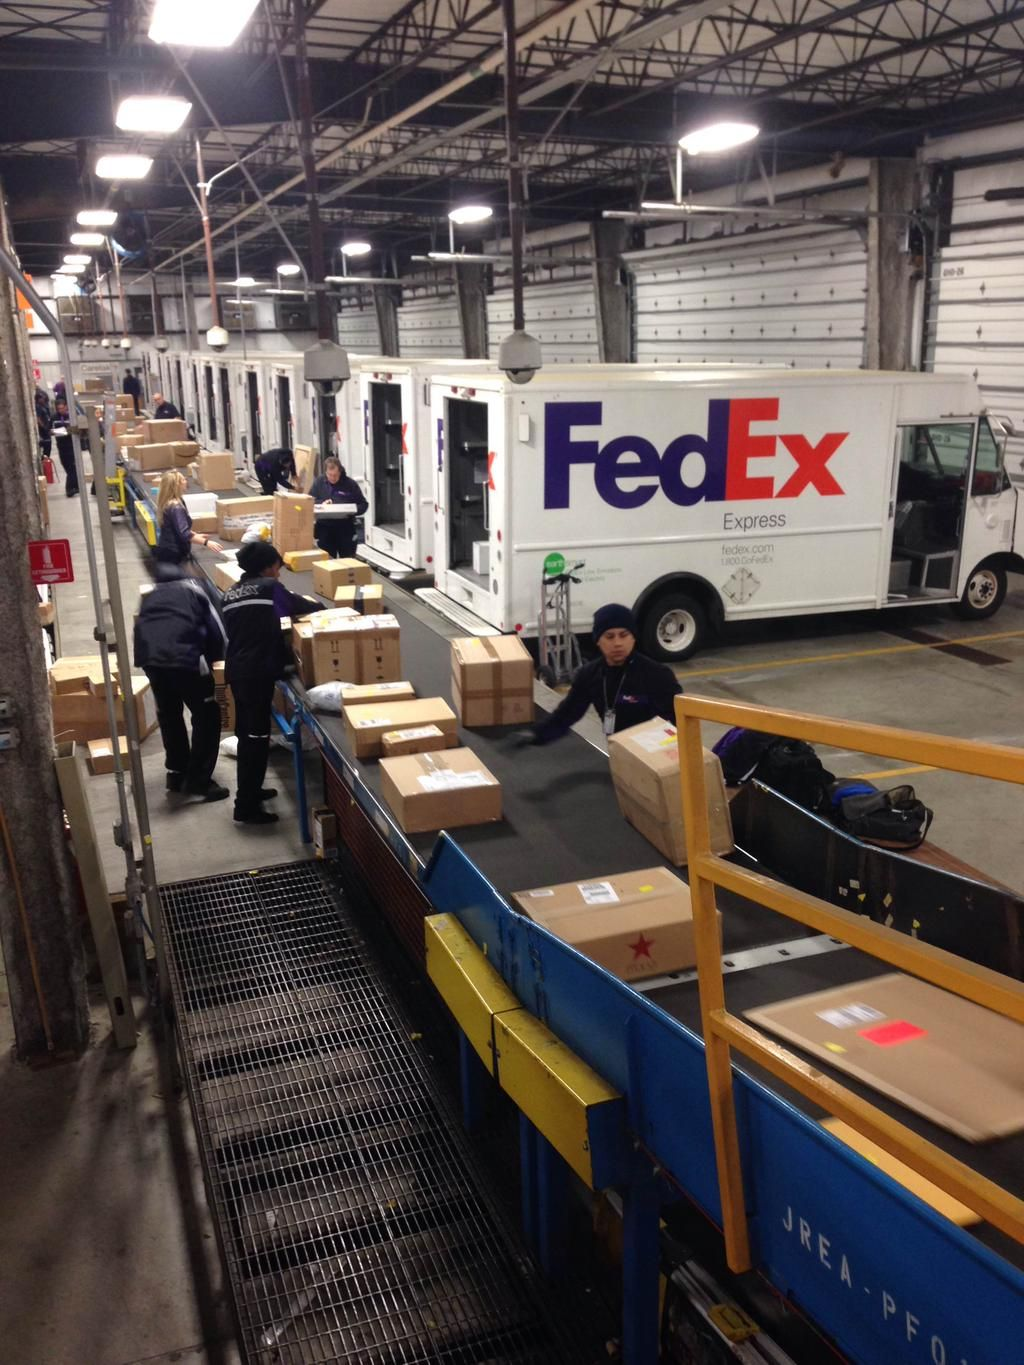 Superior FedEx Operations  Fedex Jobs